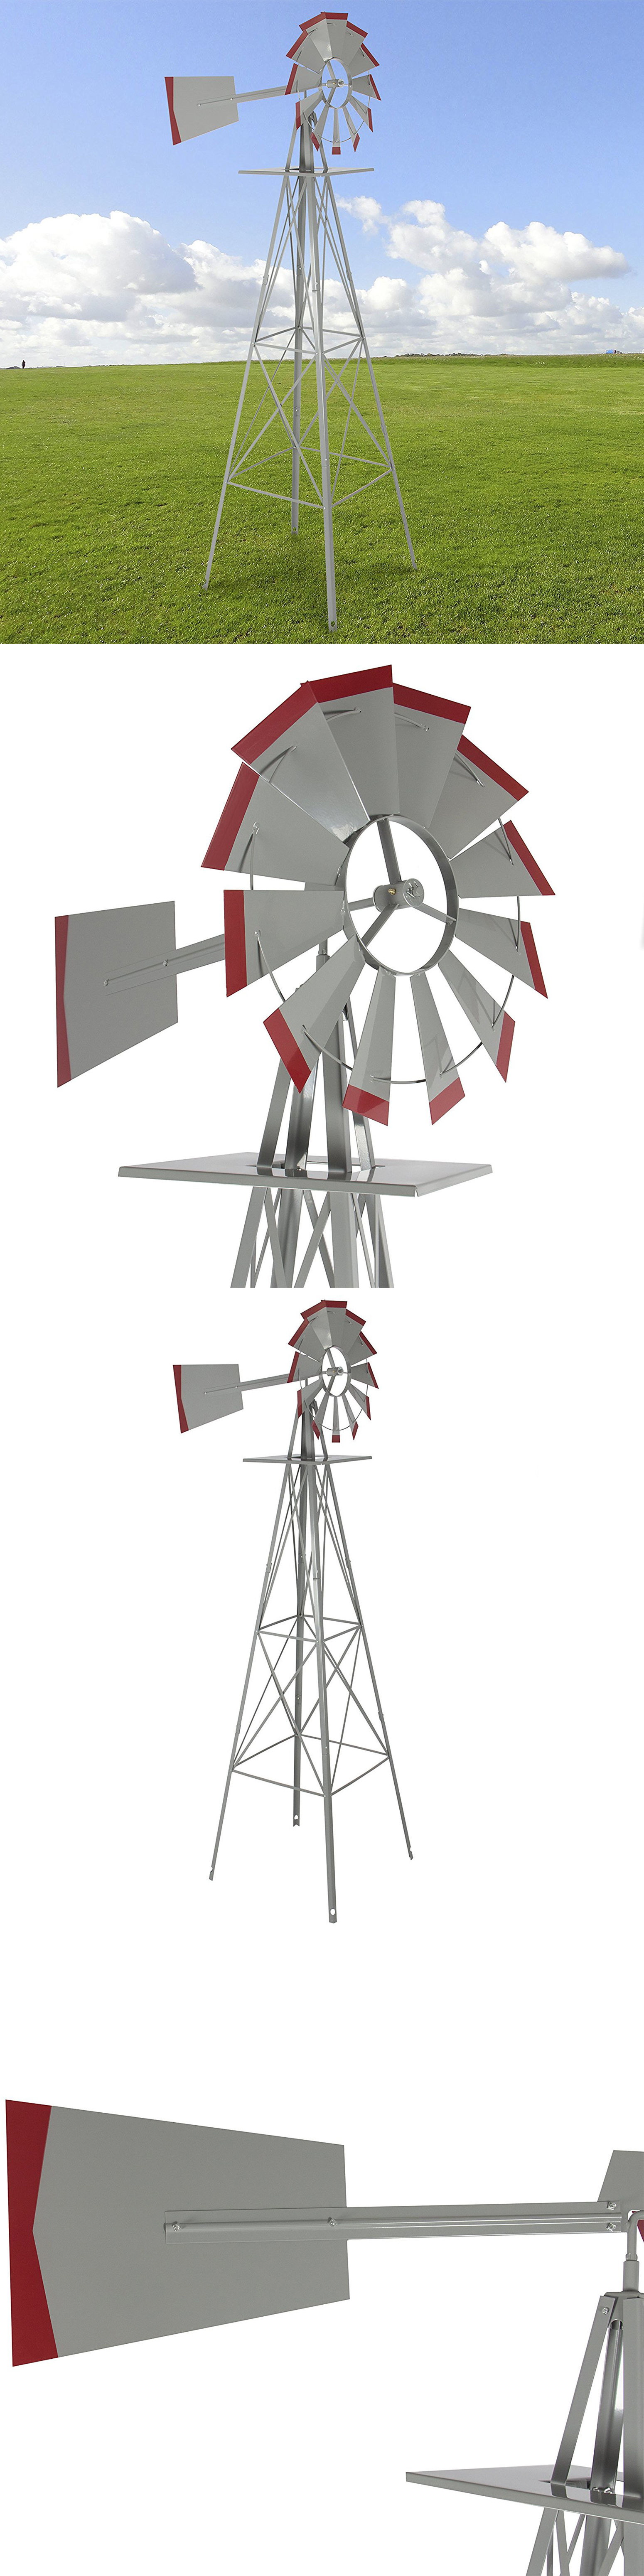 Windmills And Wind Spinners 115772: Windmill 8 Ornamental Garden Weather  Vane Weather Resistant Wind Spinner